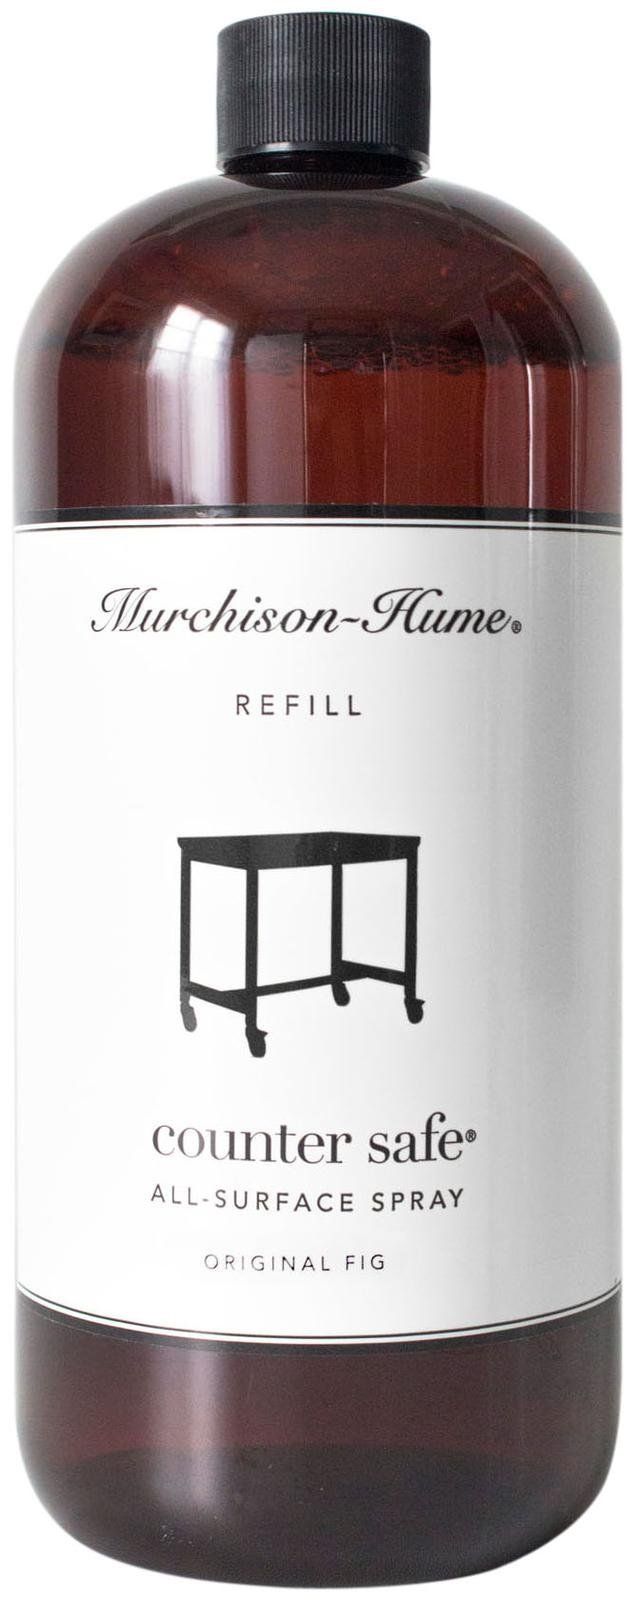 Murchison-Hume Refill Counter Safe Surface Spray - 32 Oz - Original Fig